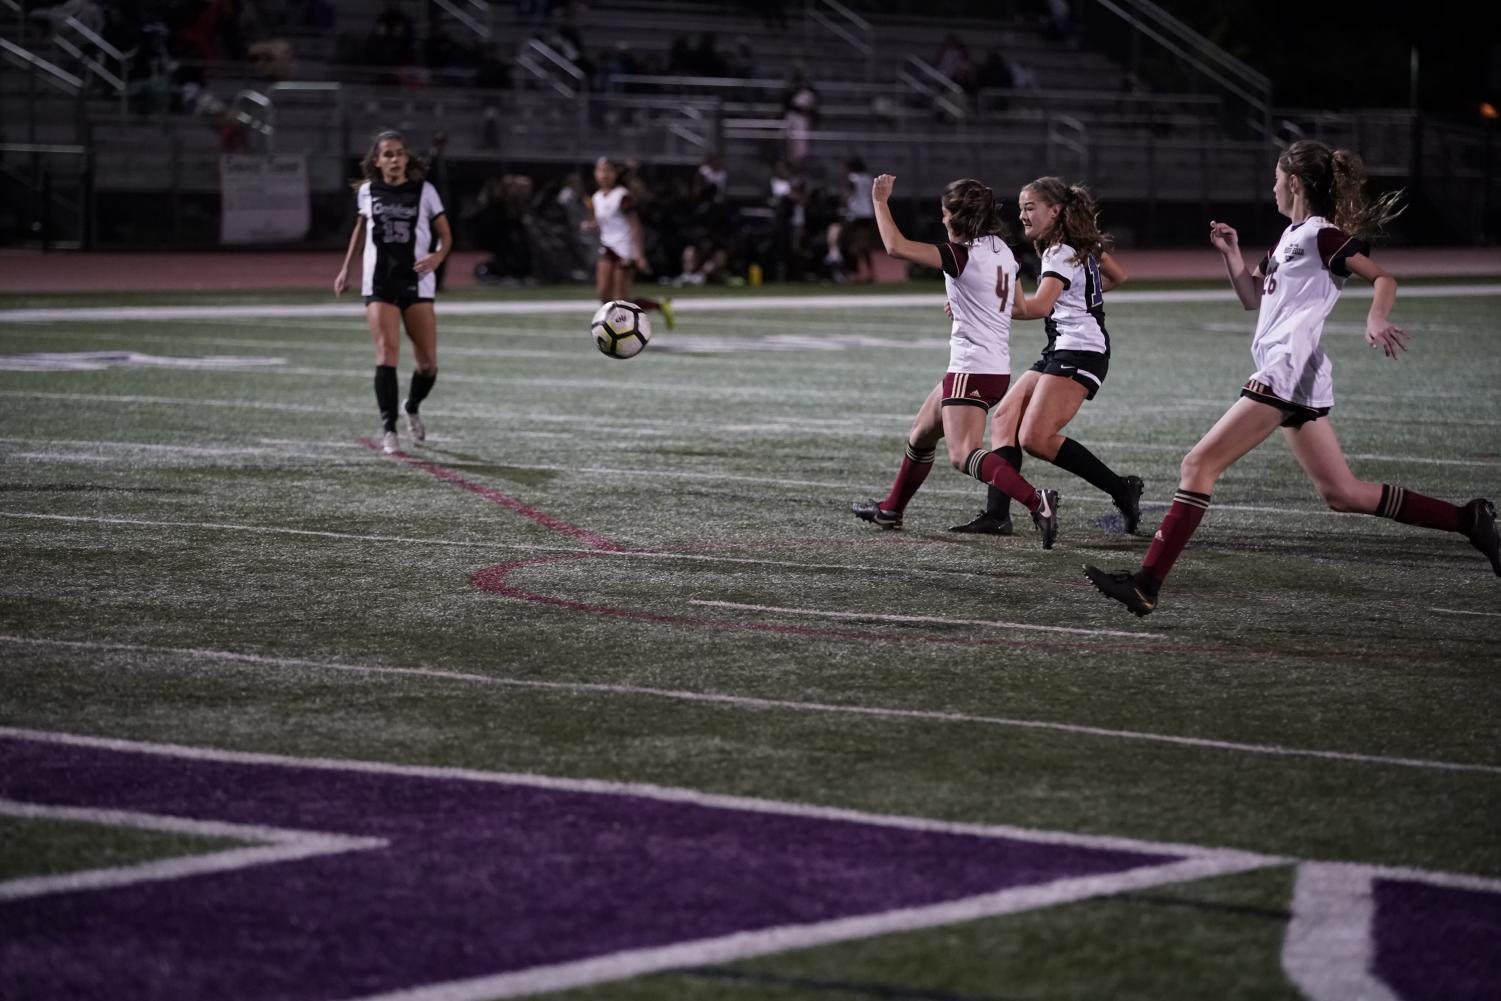 Junior Juliana Vanderbyl follows through on a shot toward goal. The Lancers have a current 14-4 record on the season.  (Courtesy of Juliana Vanderbyl)